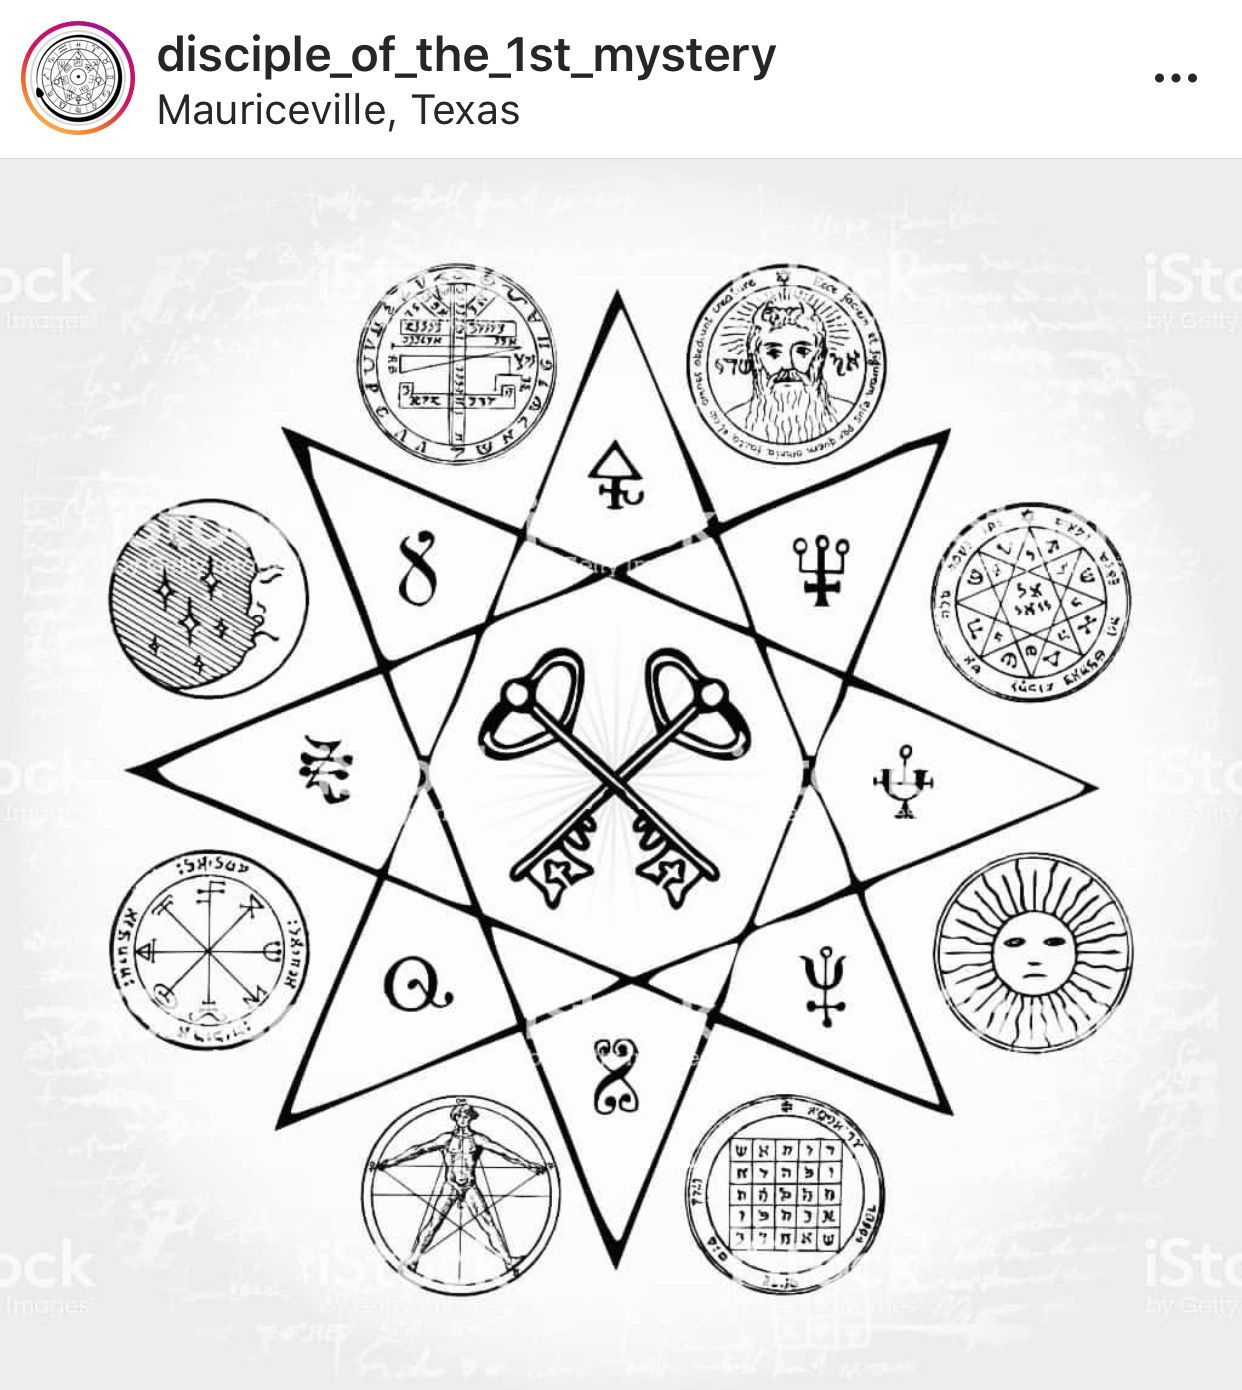 Pin by MASTER THERION on Symbols (With images) Cards